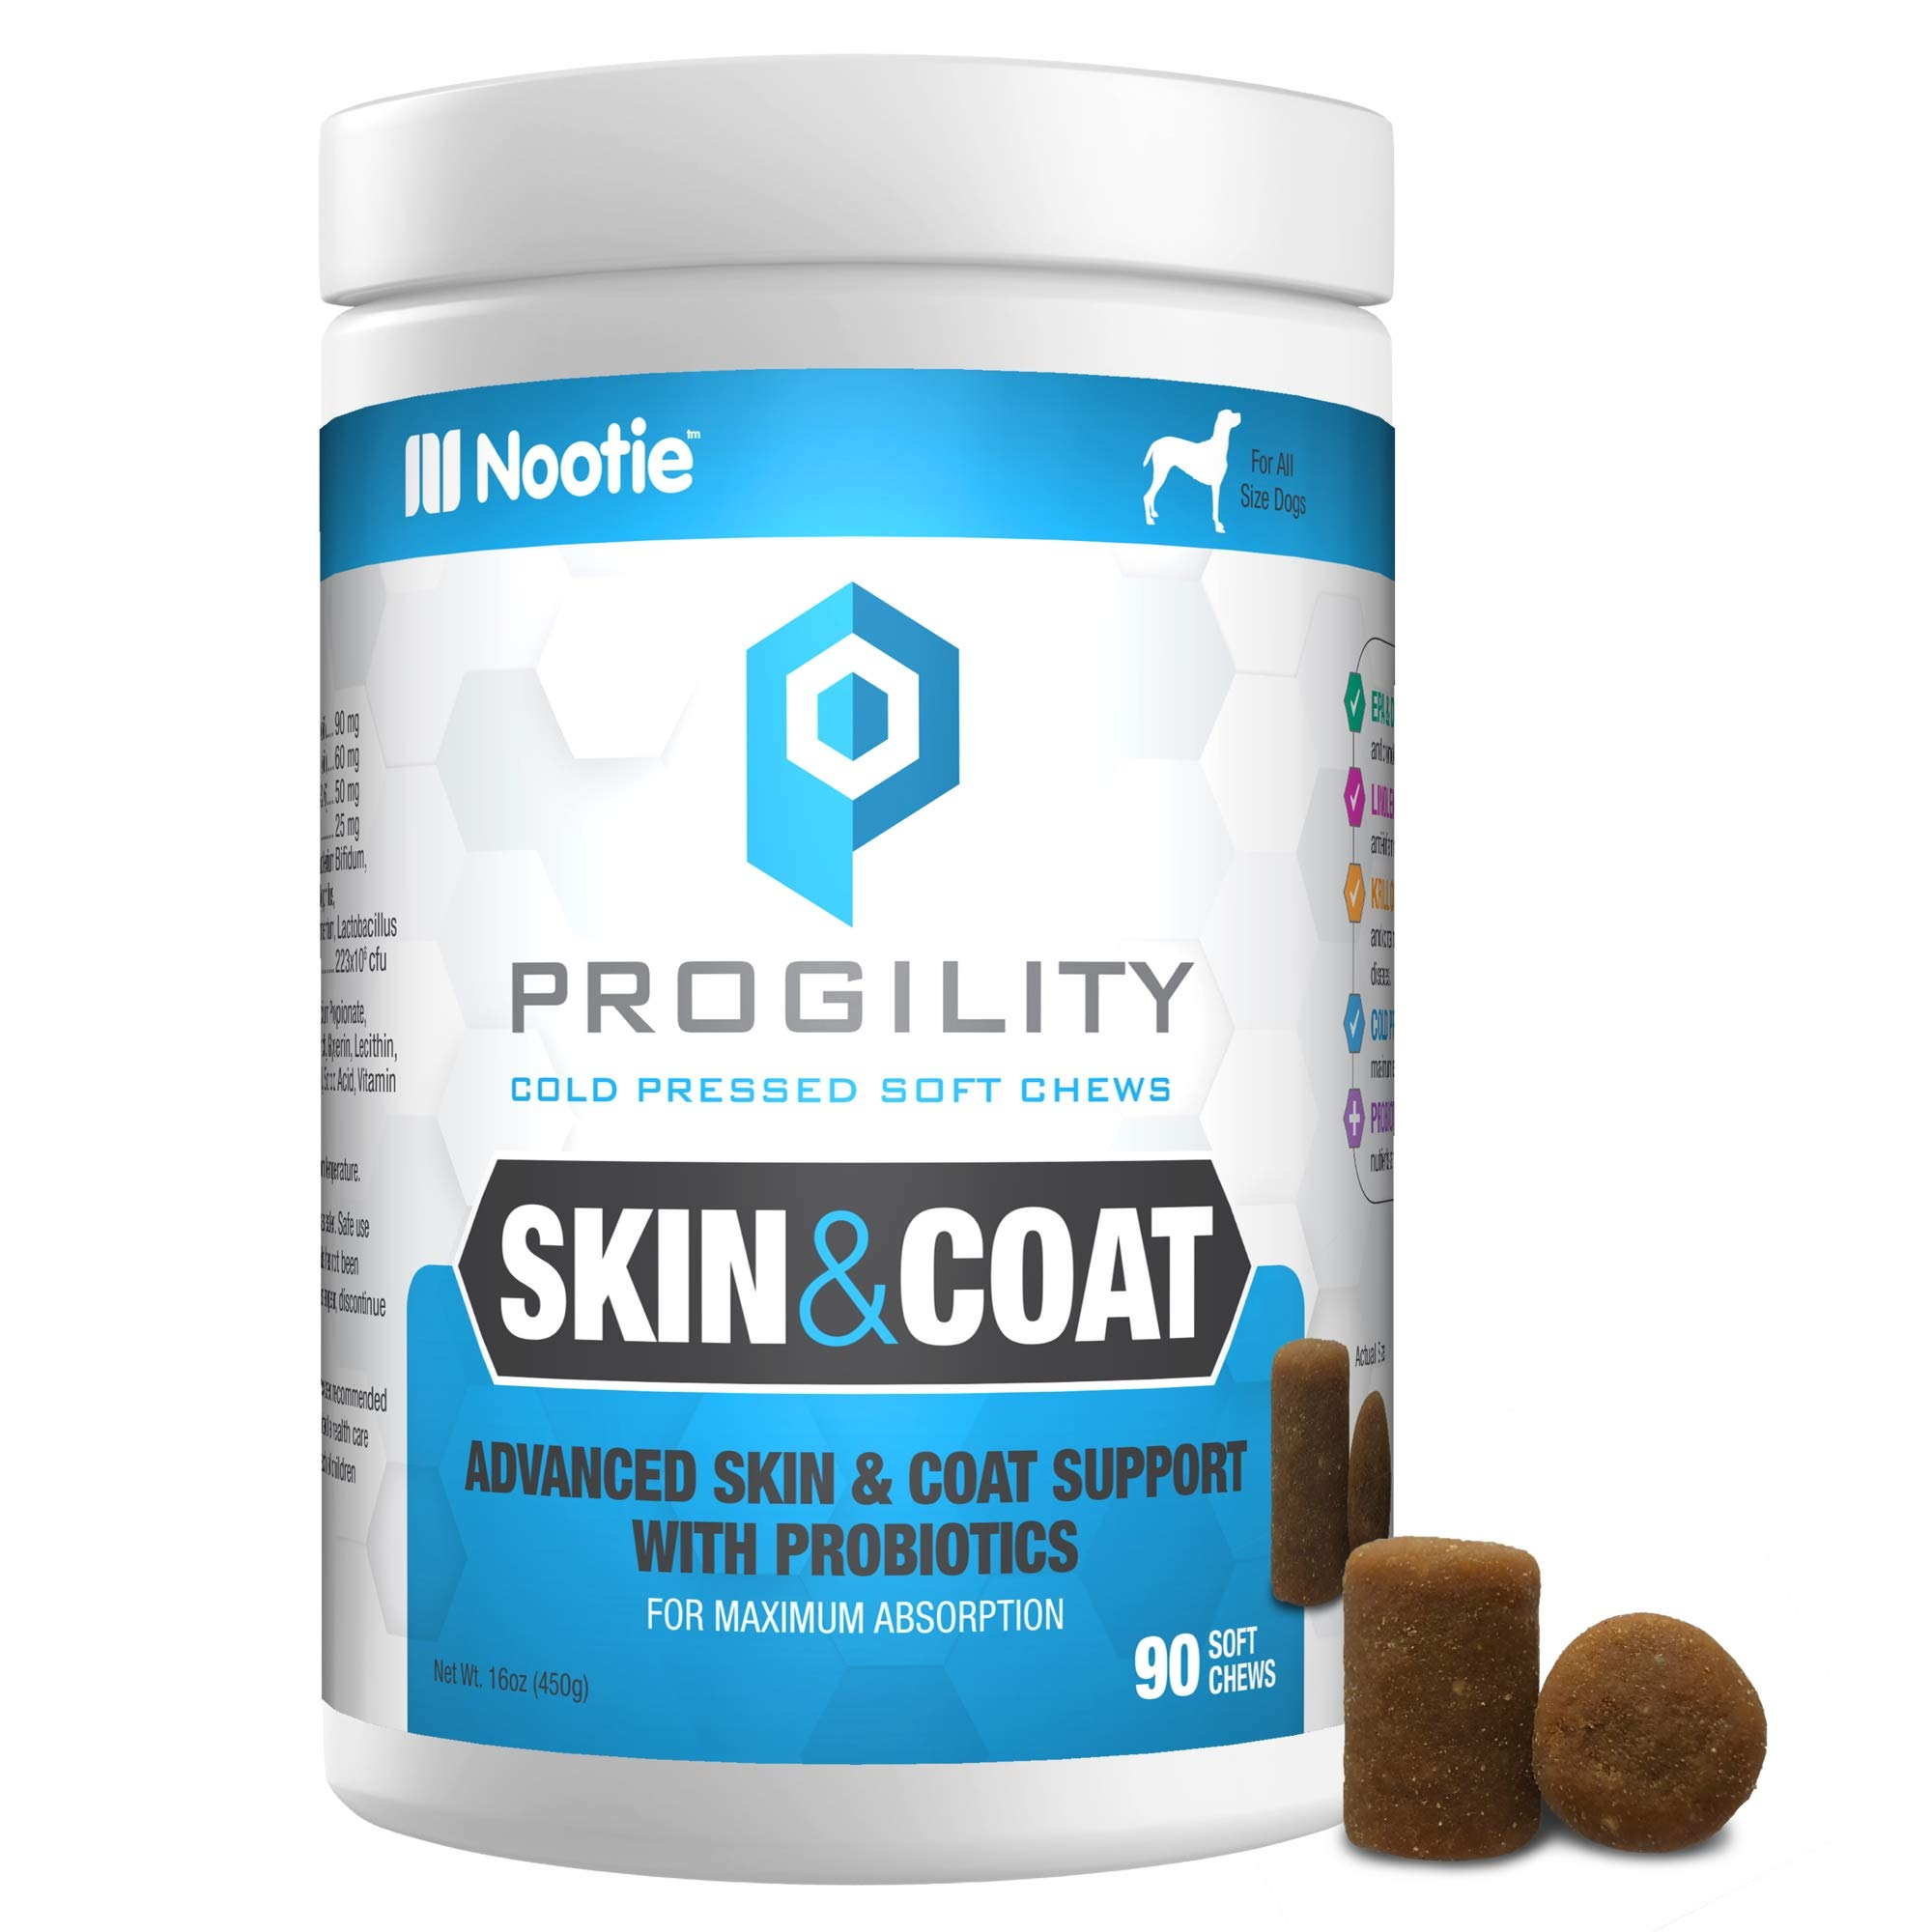 PROGILITY Nootie Skin & Coat with Probiotics for Dogs - 90 Cold Pressed Soft Chews - Advanced Skin & Coat Support, Chewable Omega 3 for Dogs with Krill & Flaxseed Oil by PROGILITY